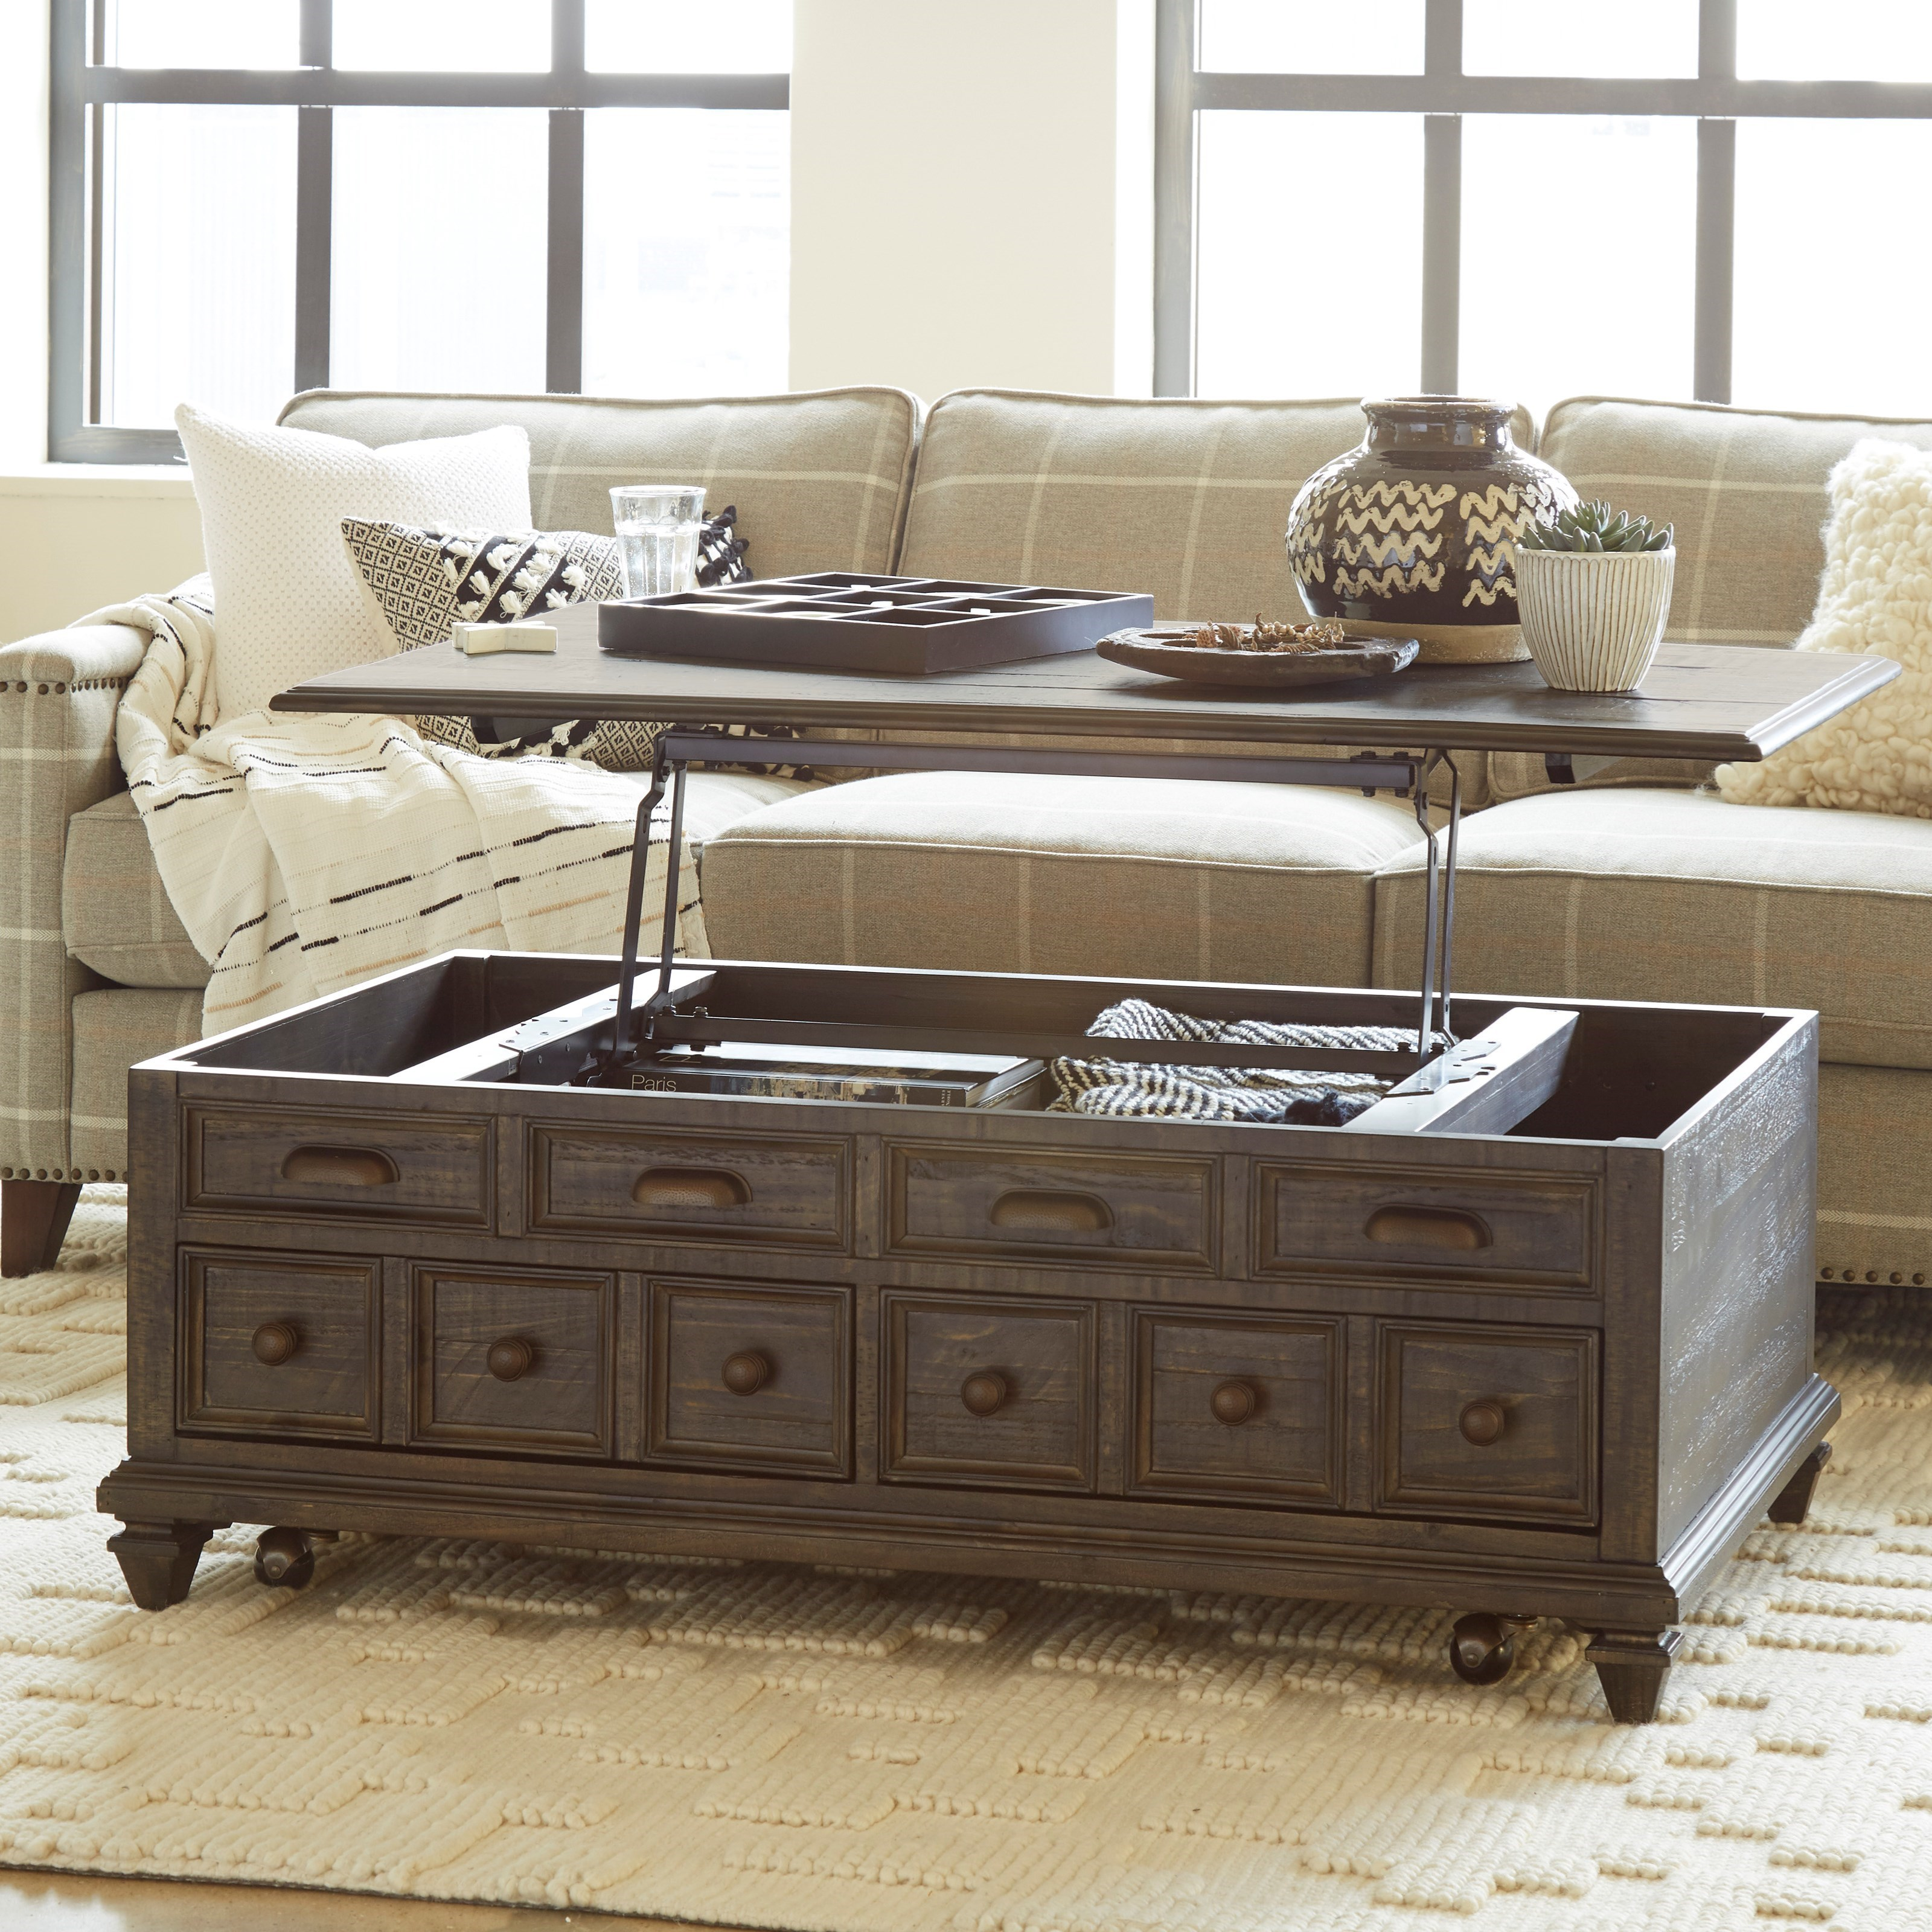 magnussen home burkhardt rustic lift top cocktail table with casters conlin 39 s furniture. Black Bedroom Furniture Sets. Home Design Ideas